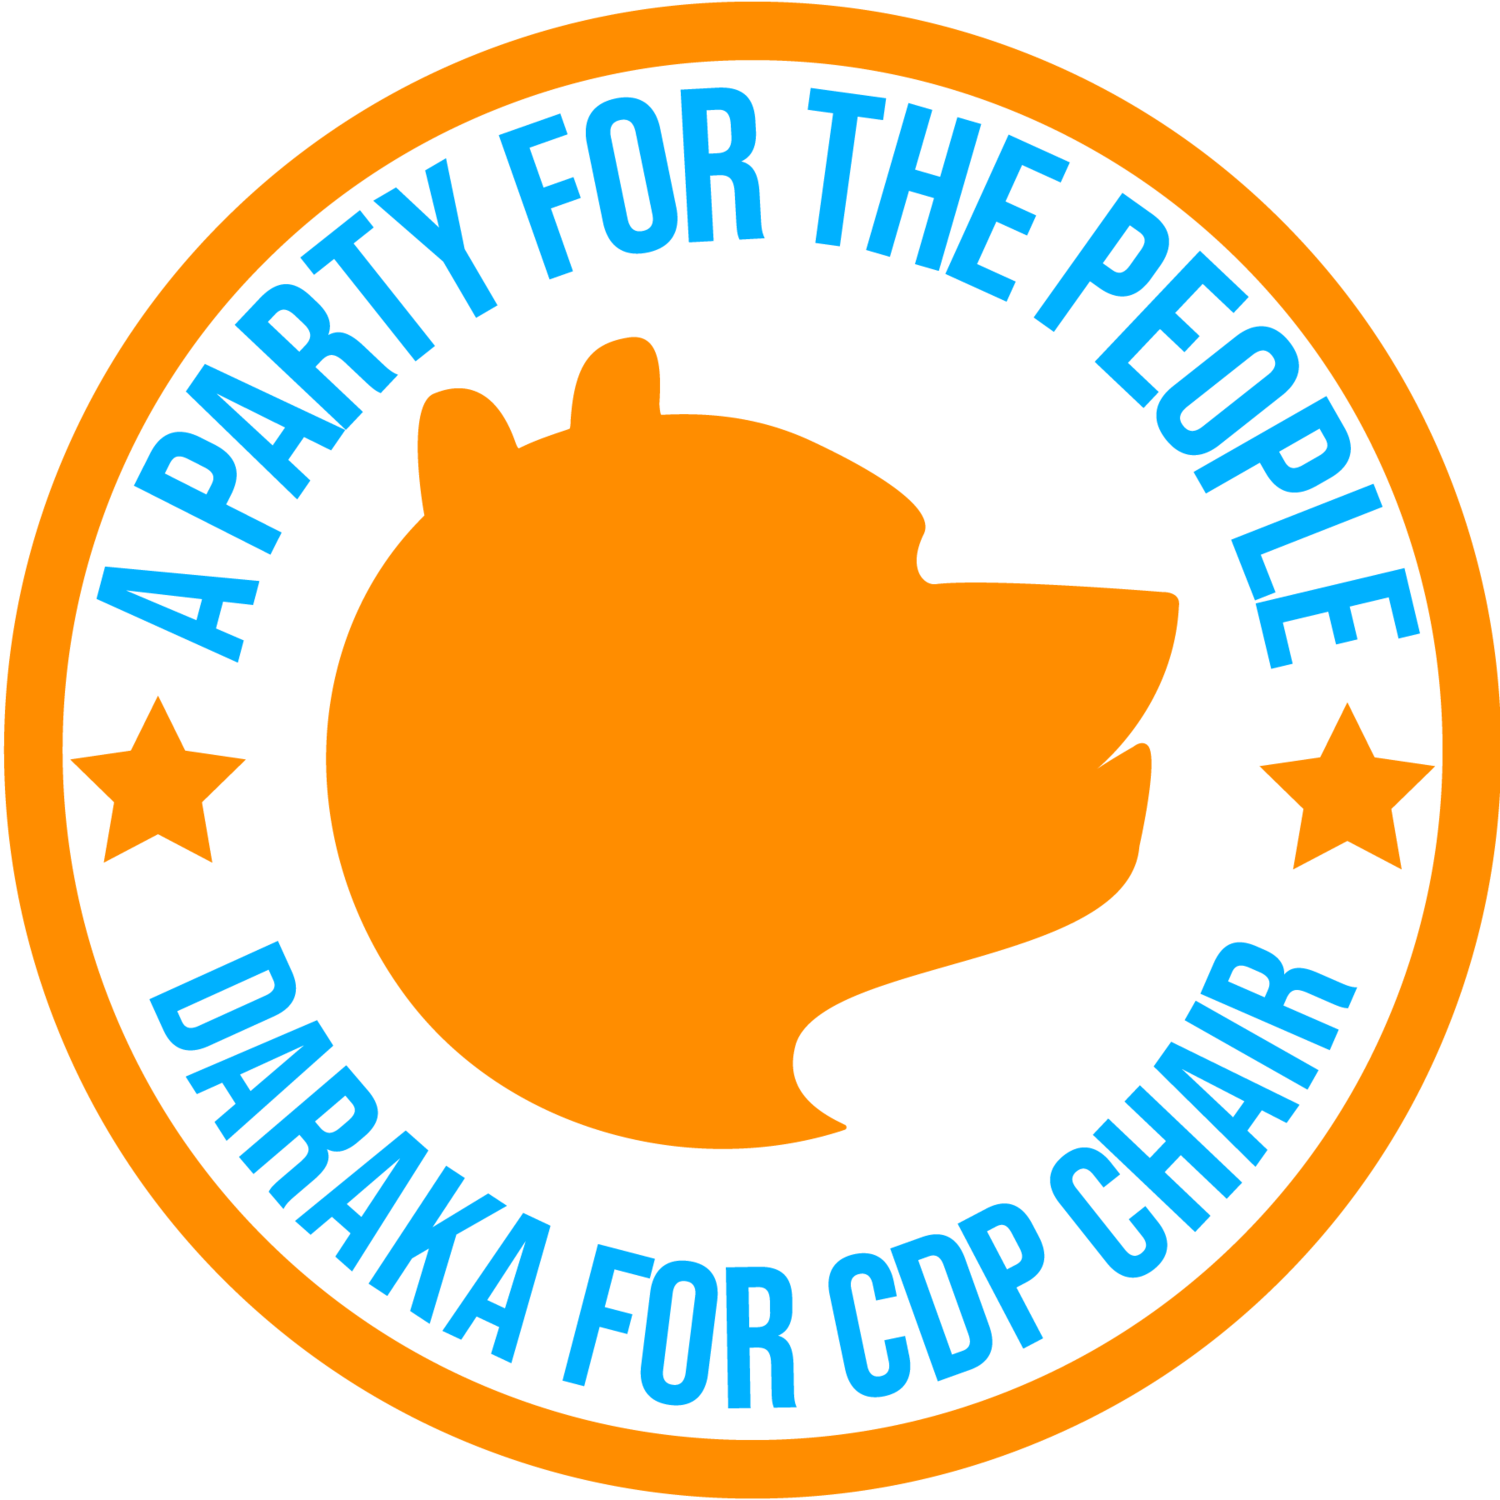 Daraka for CDP chair